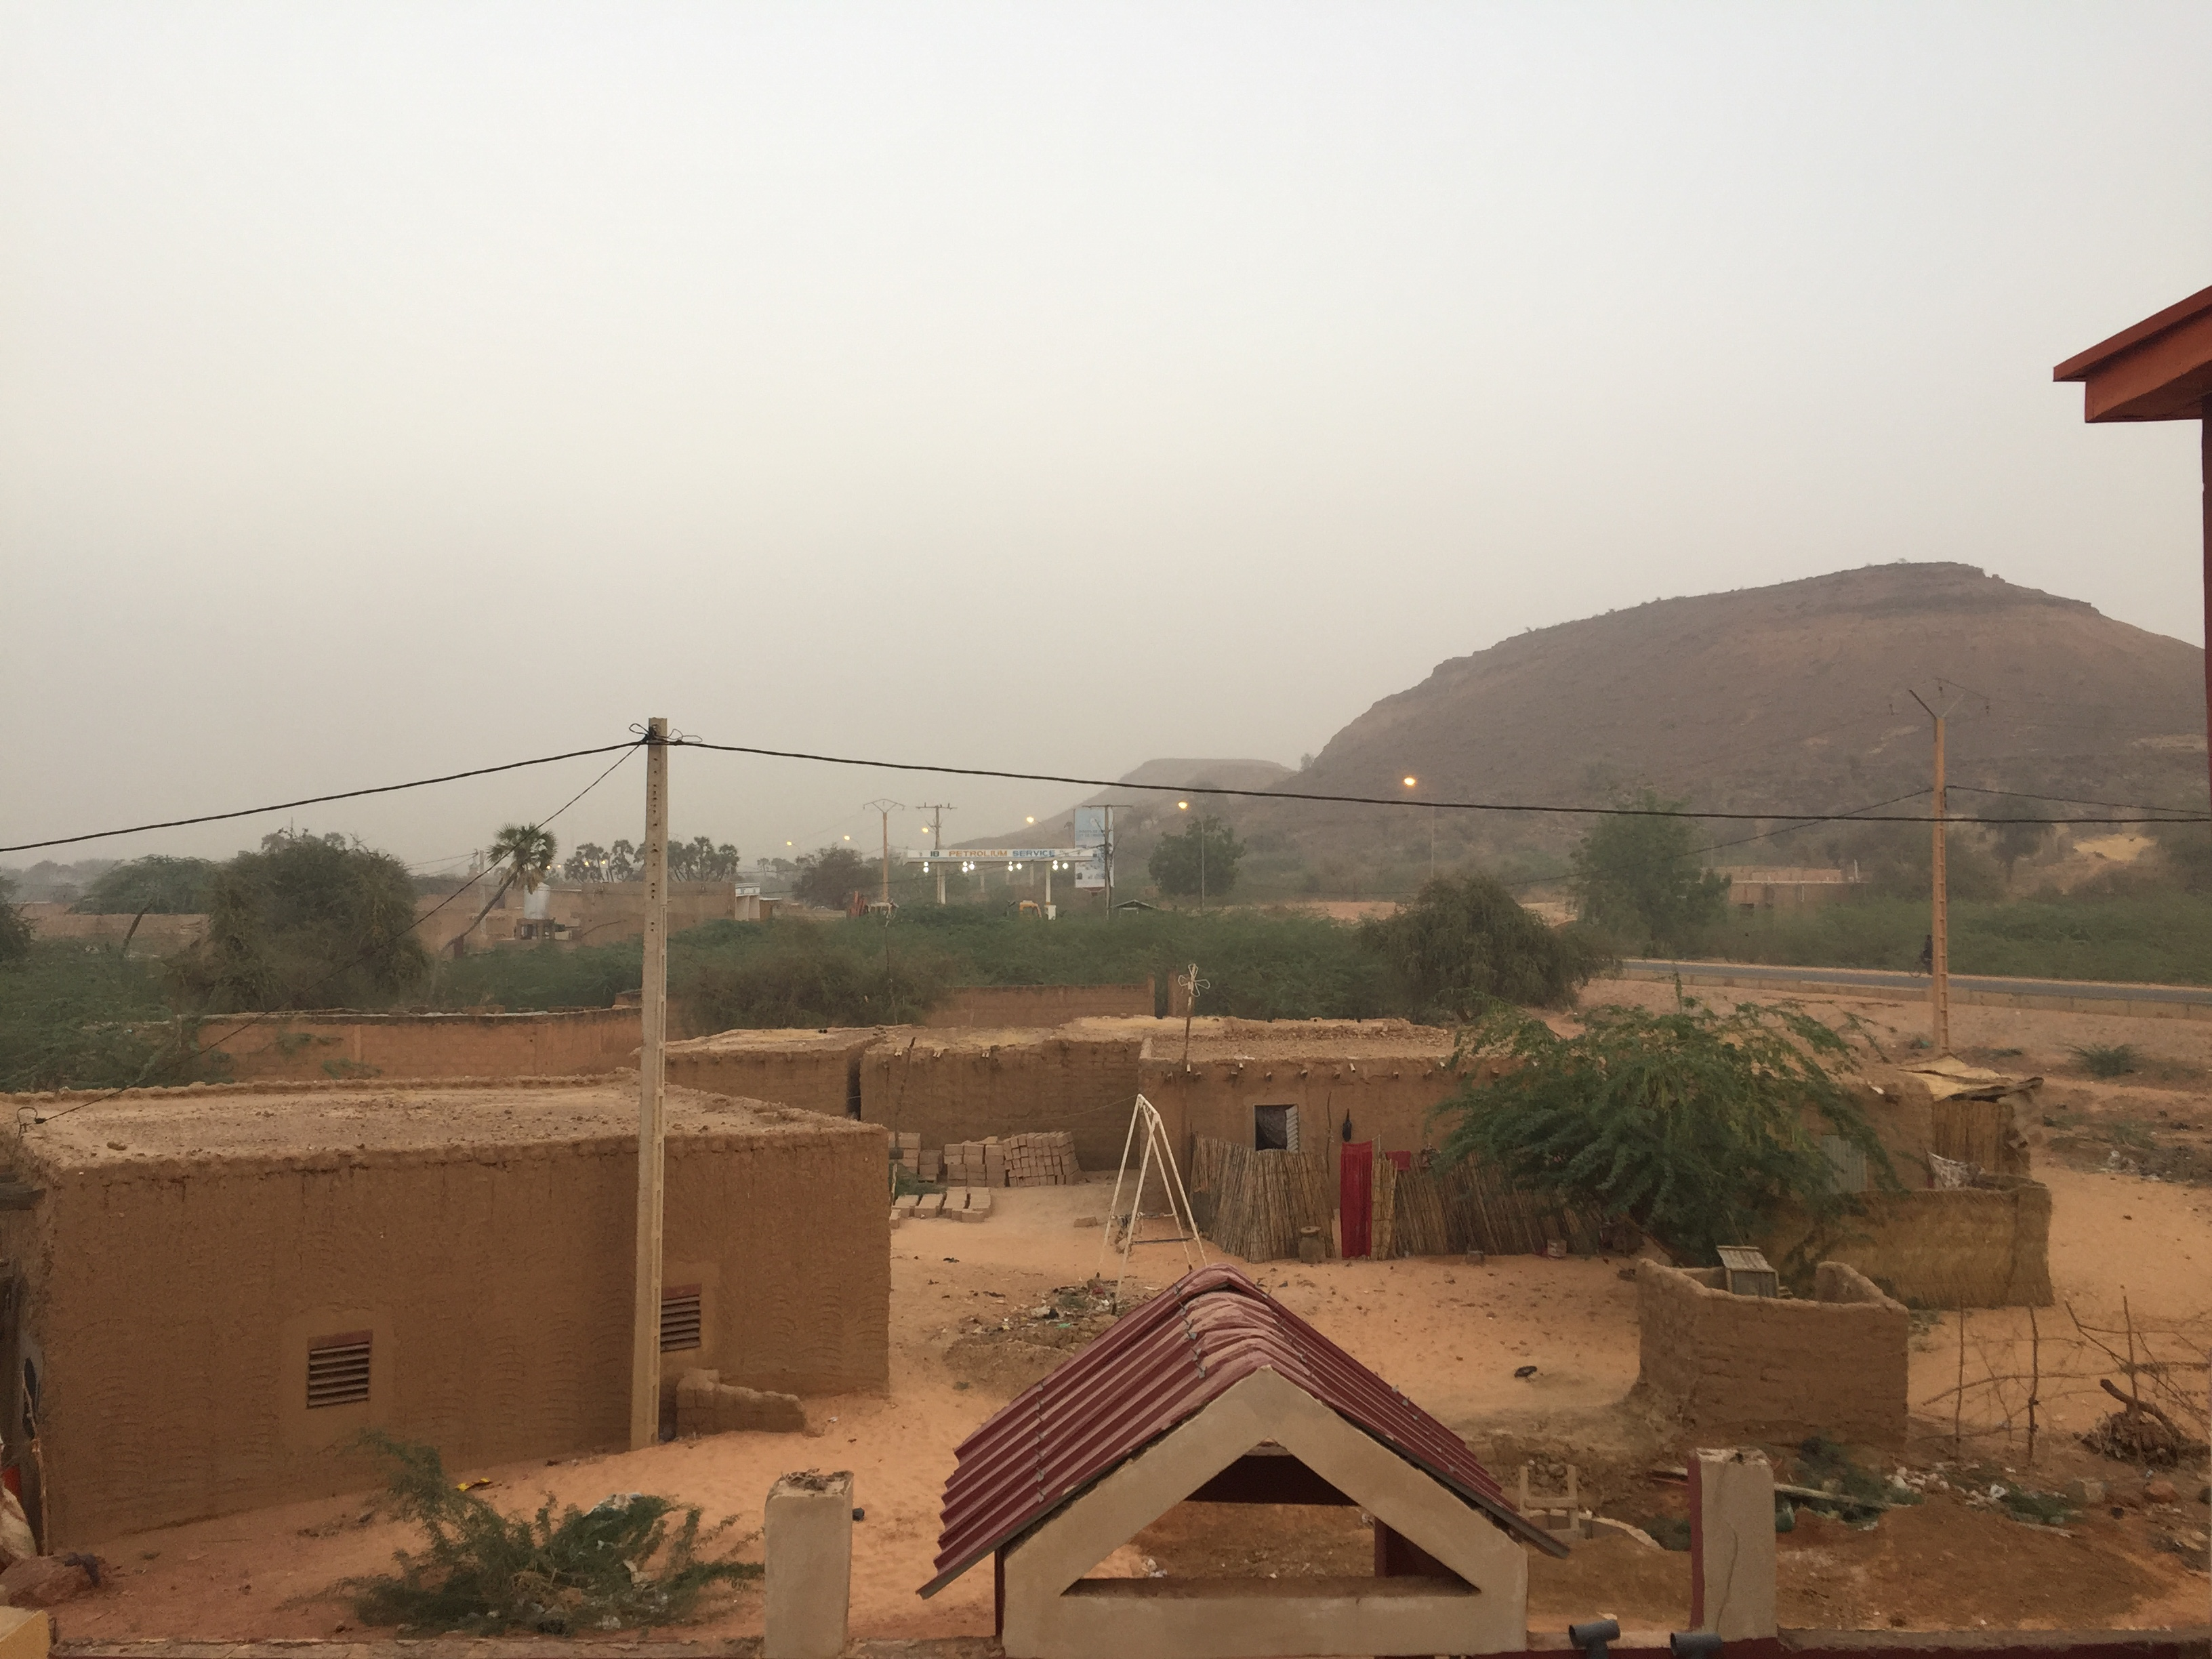 A dust storm approaching Niger's capital Niamey.